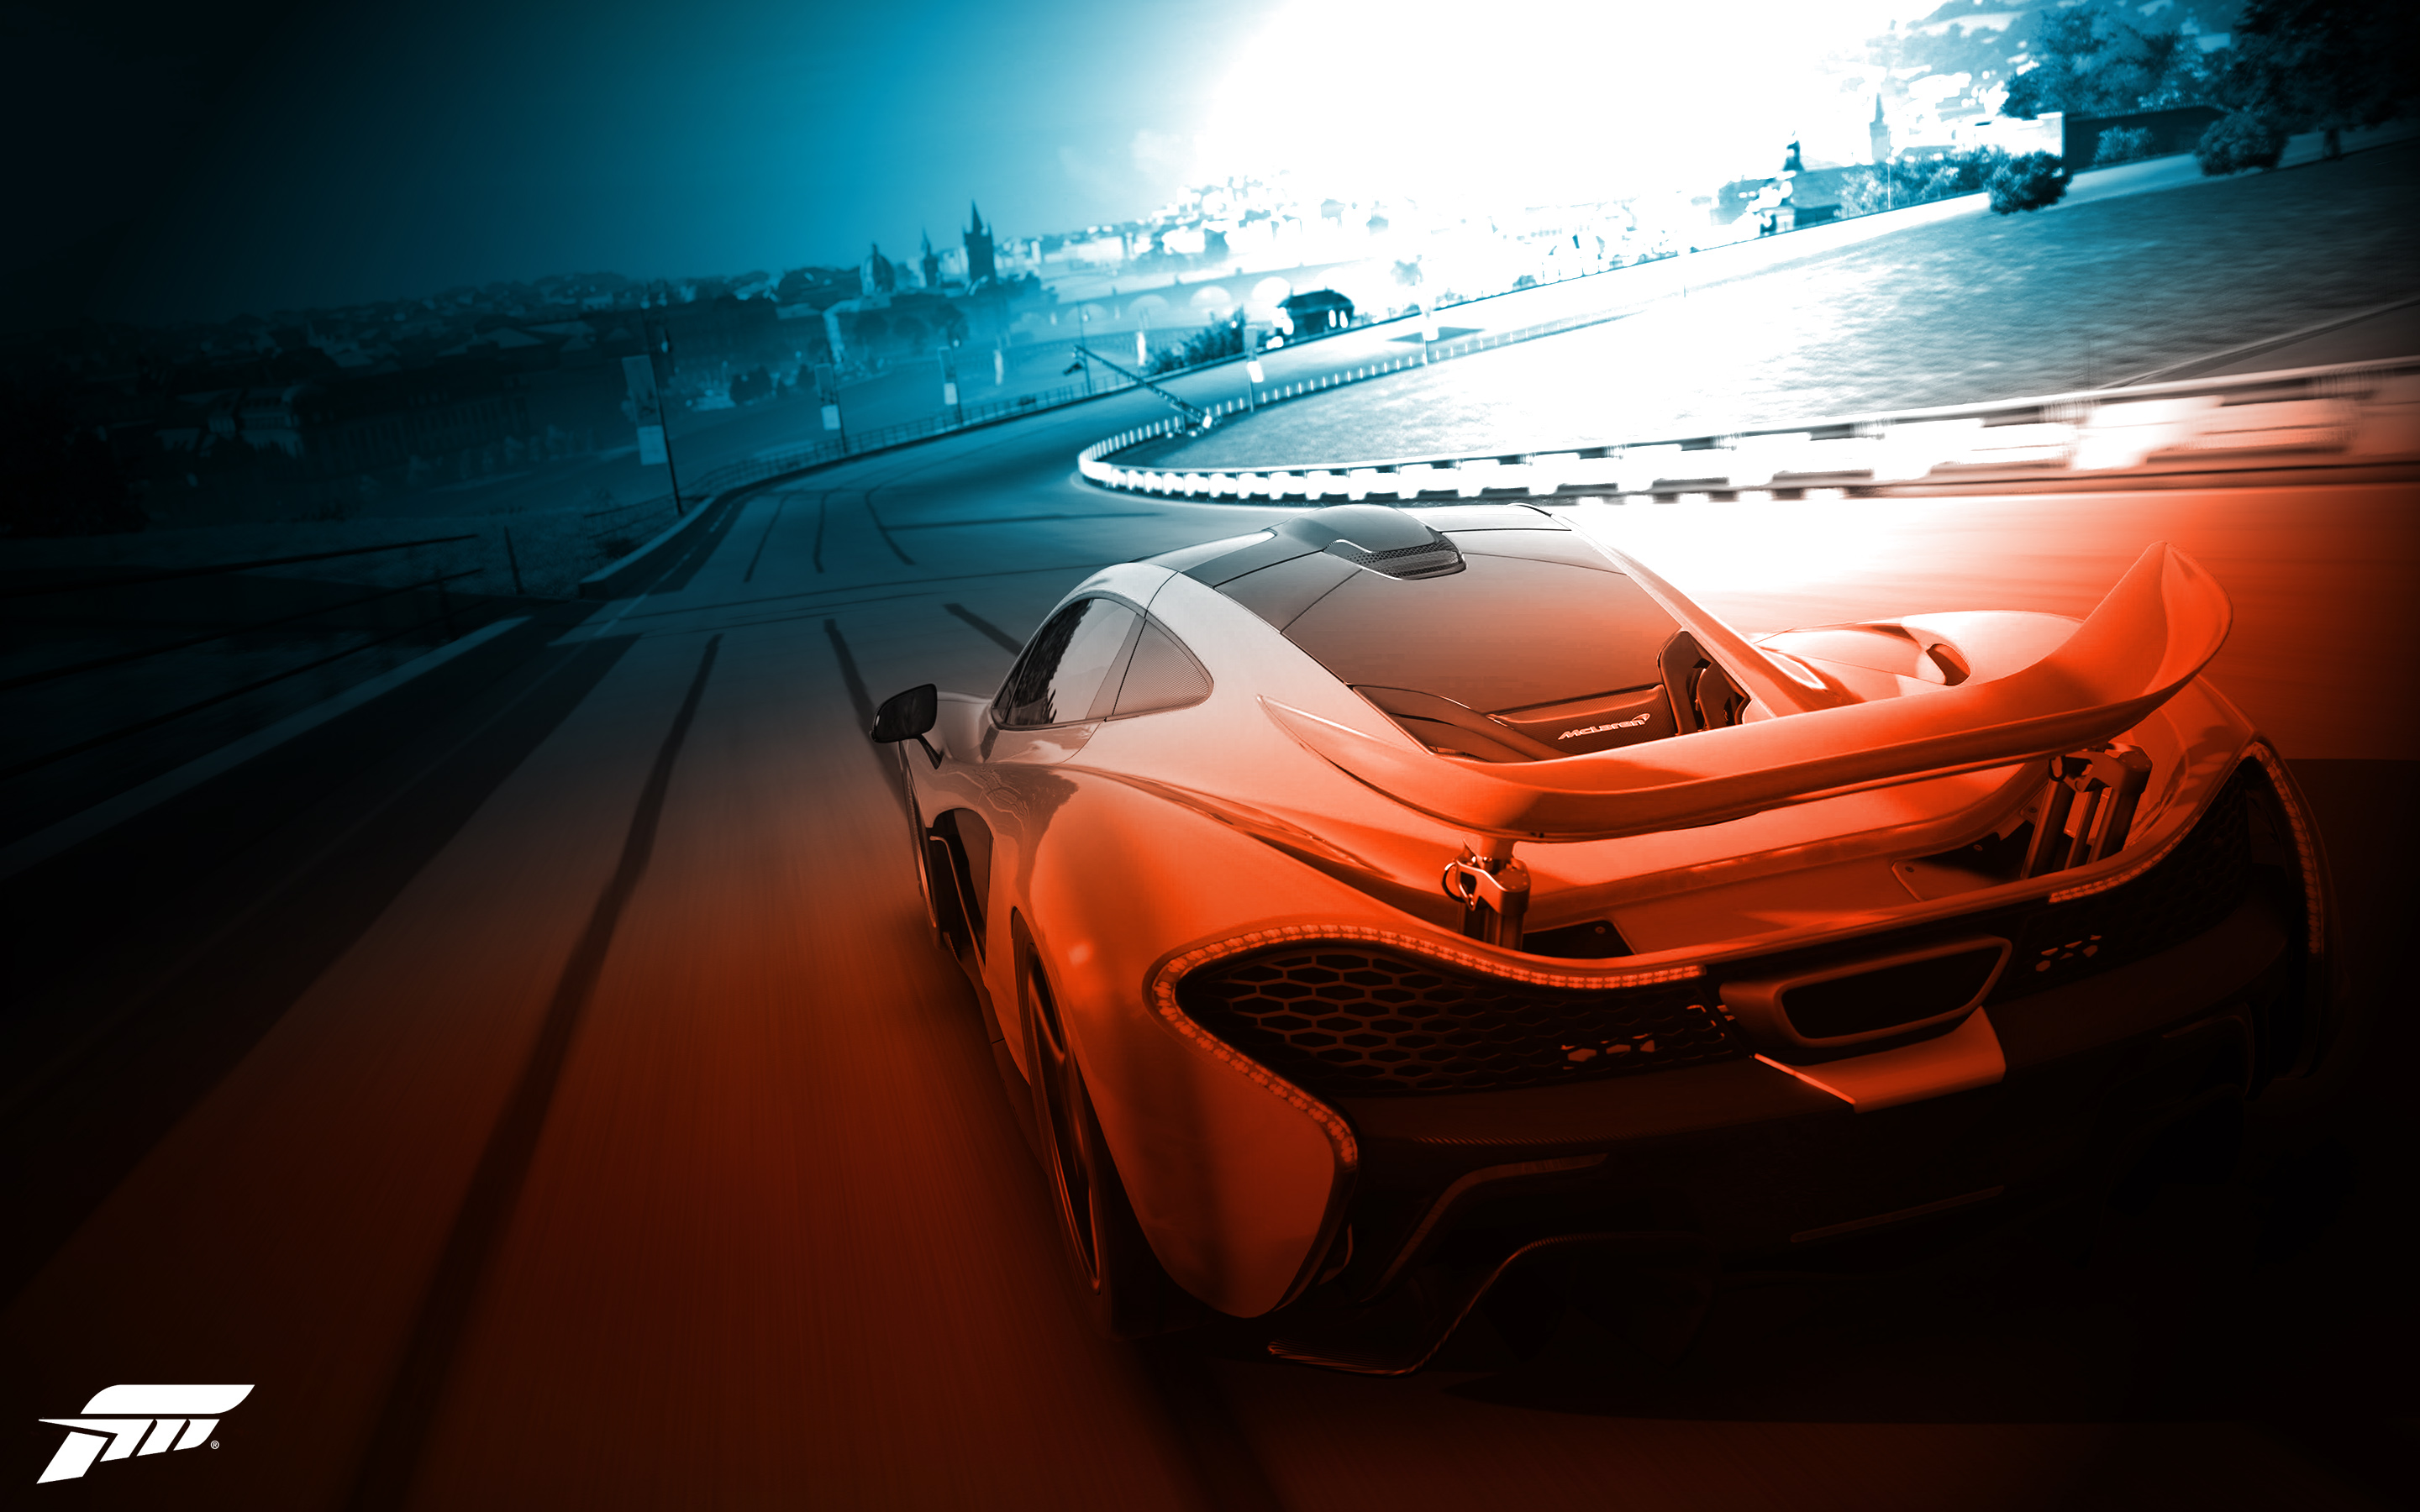 Iphone 5 wallpapers 0232 7995 the wondrous pics - Forza 5 Wallpapers Hd Wallpapers